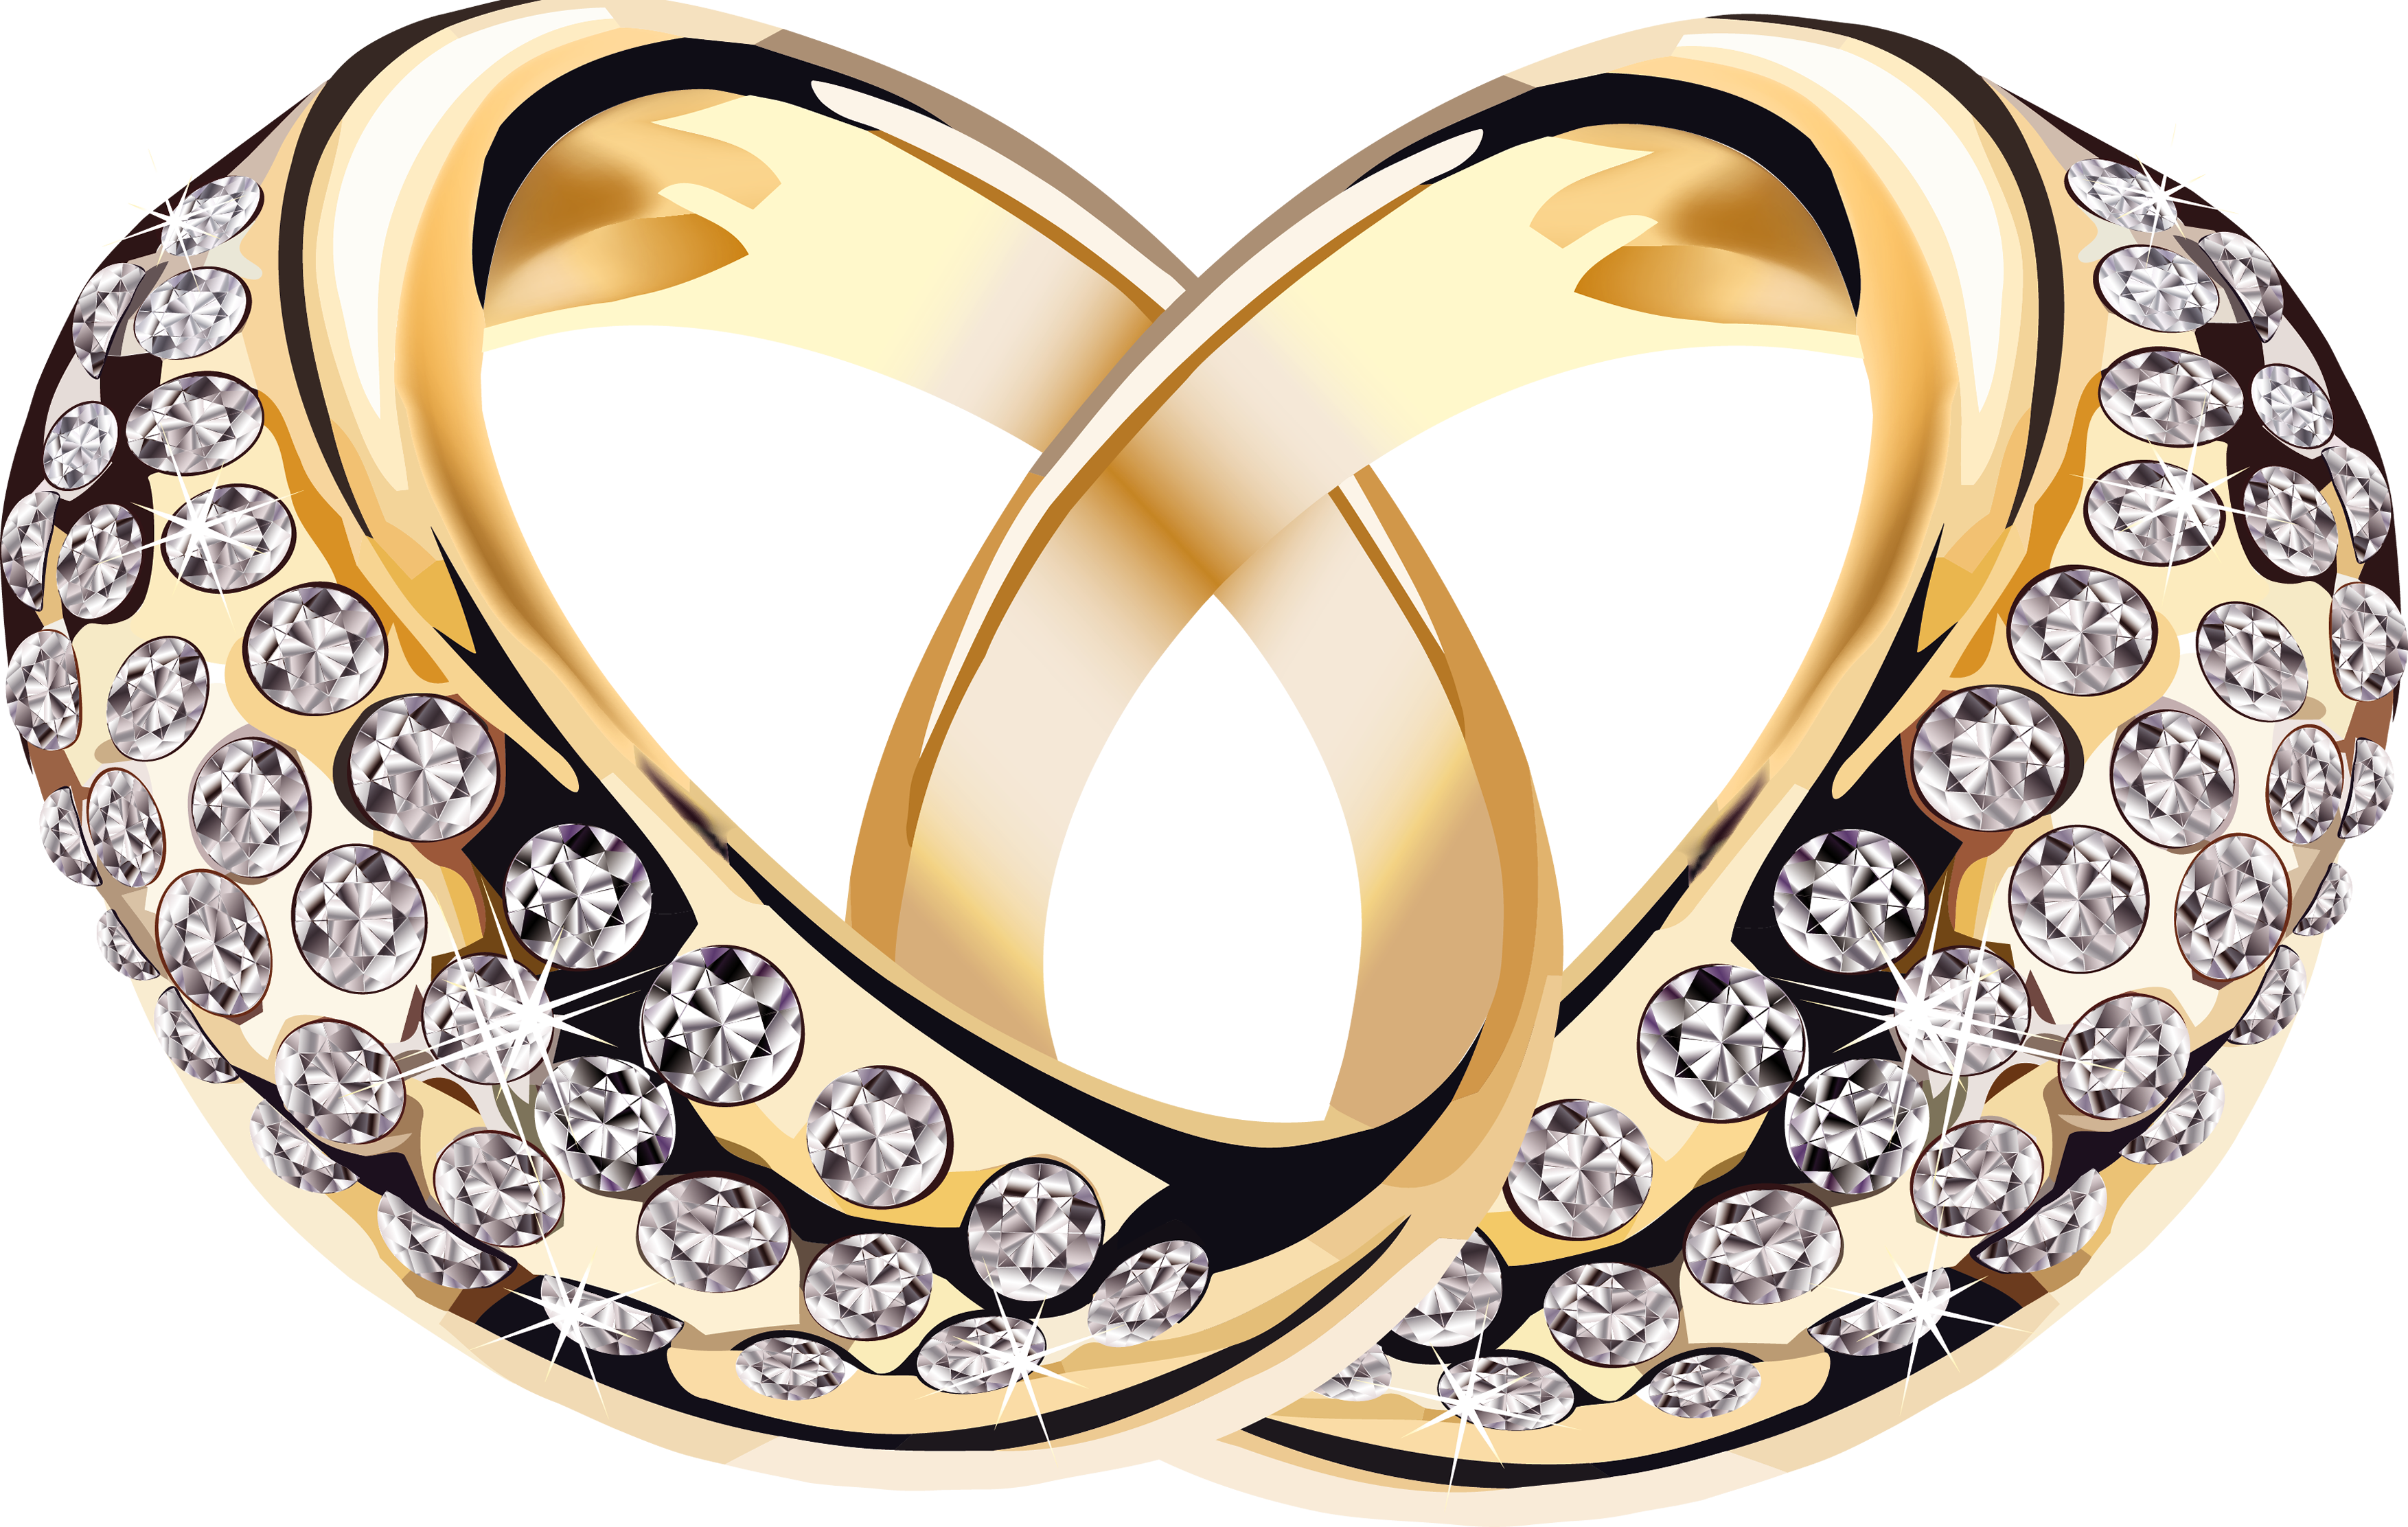 Download this high resolution Jewelry PNG